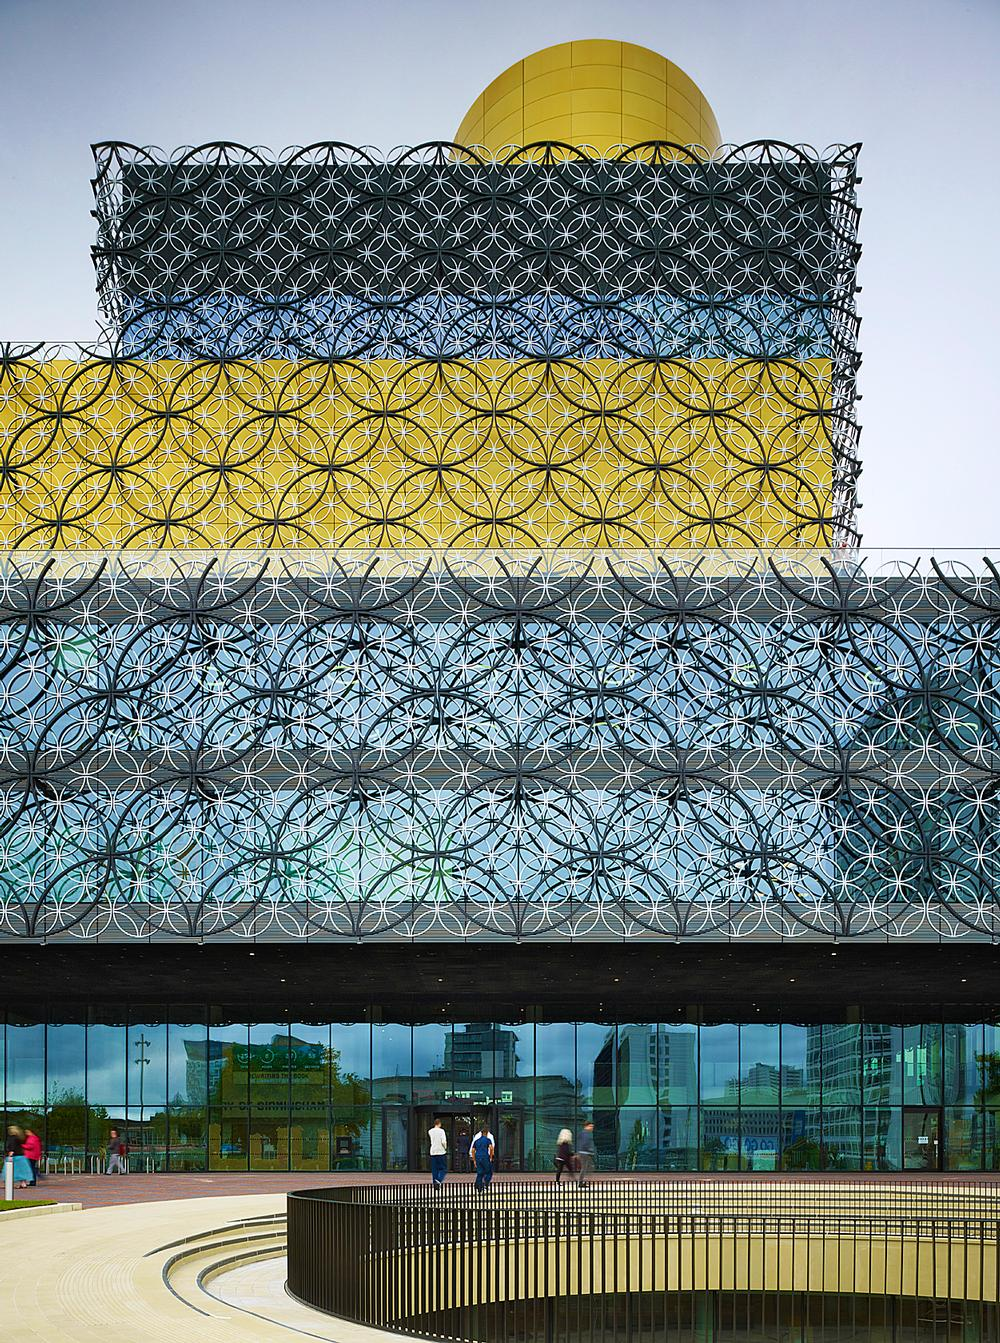 The Library of Birmingham's façade references the city's history of jewellery manufacturing